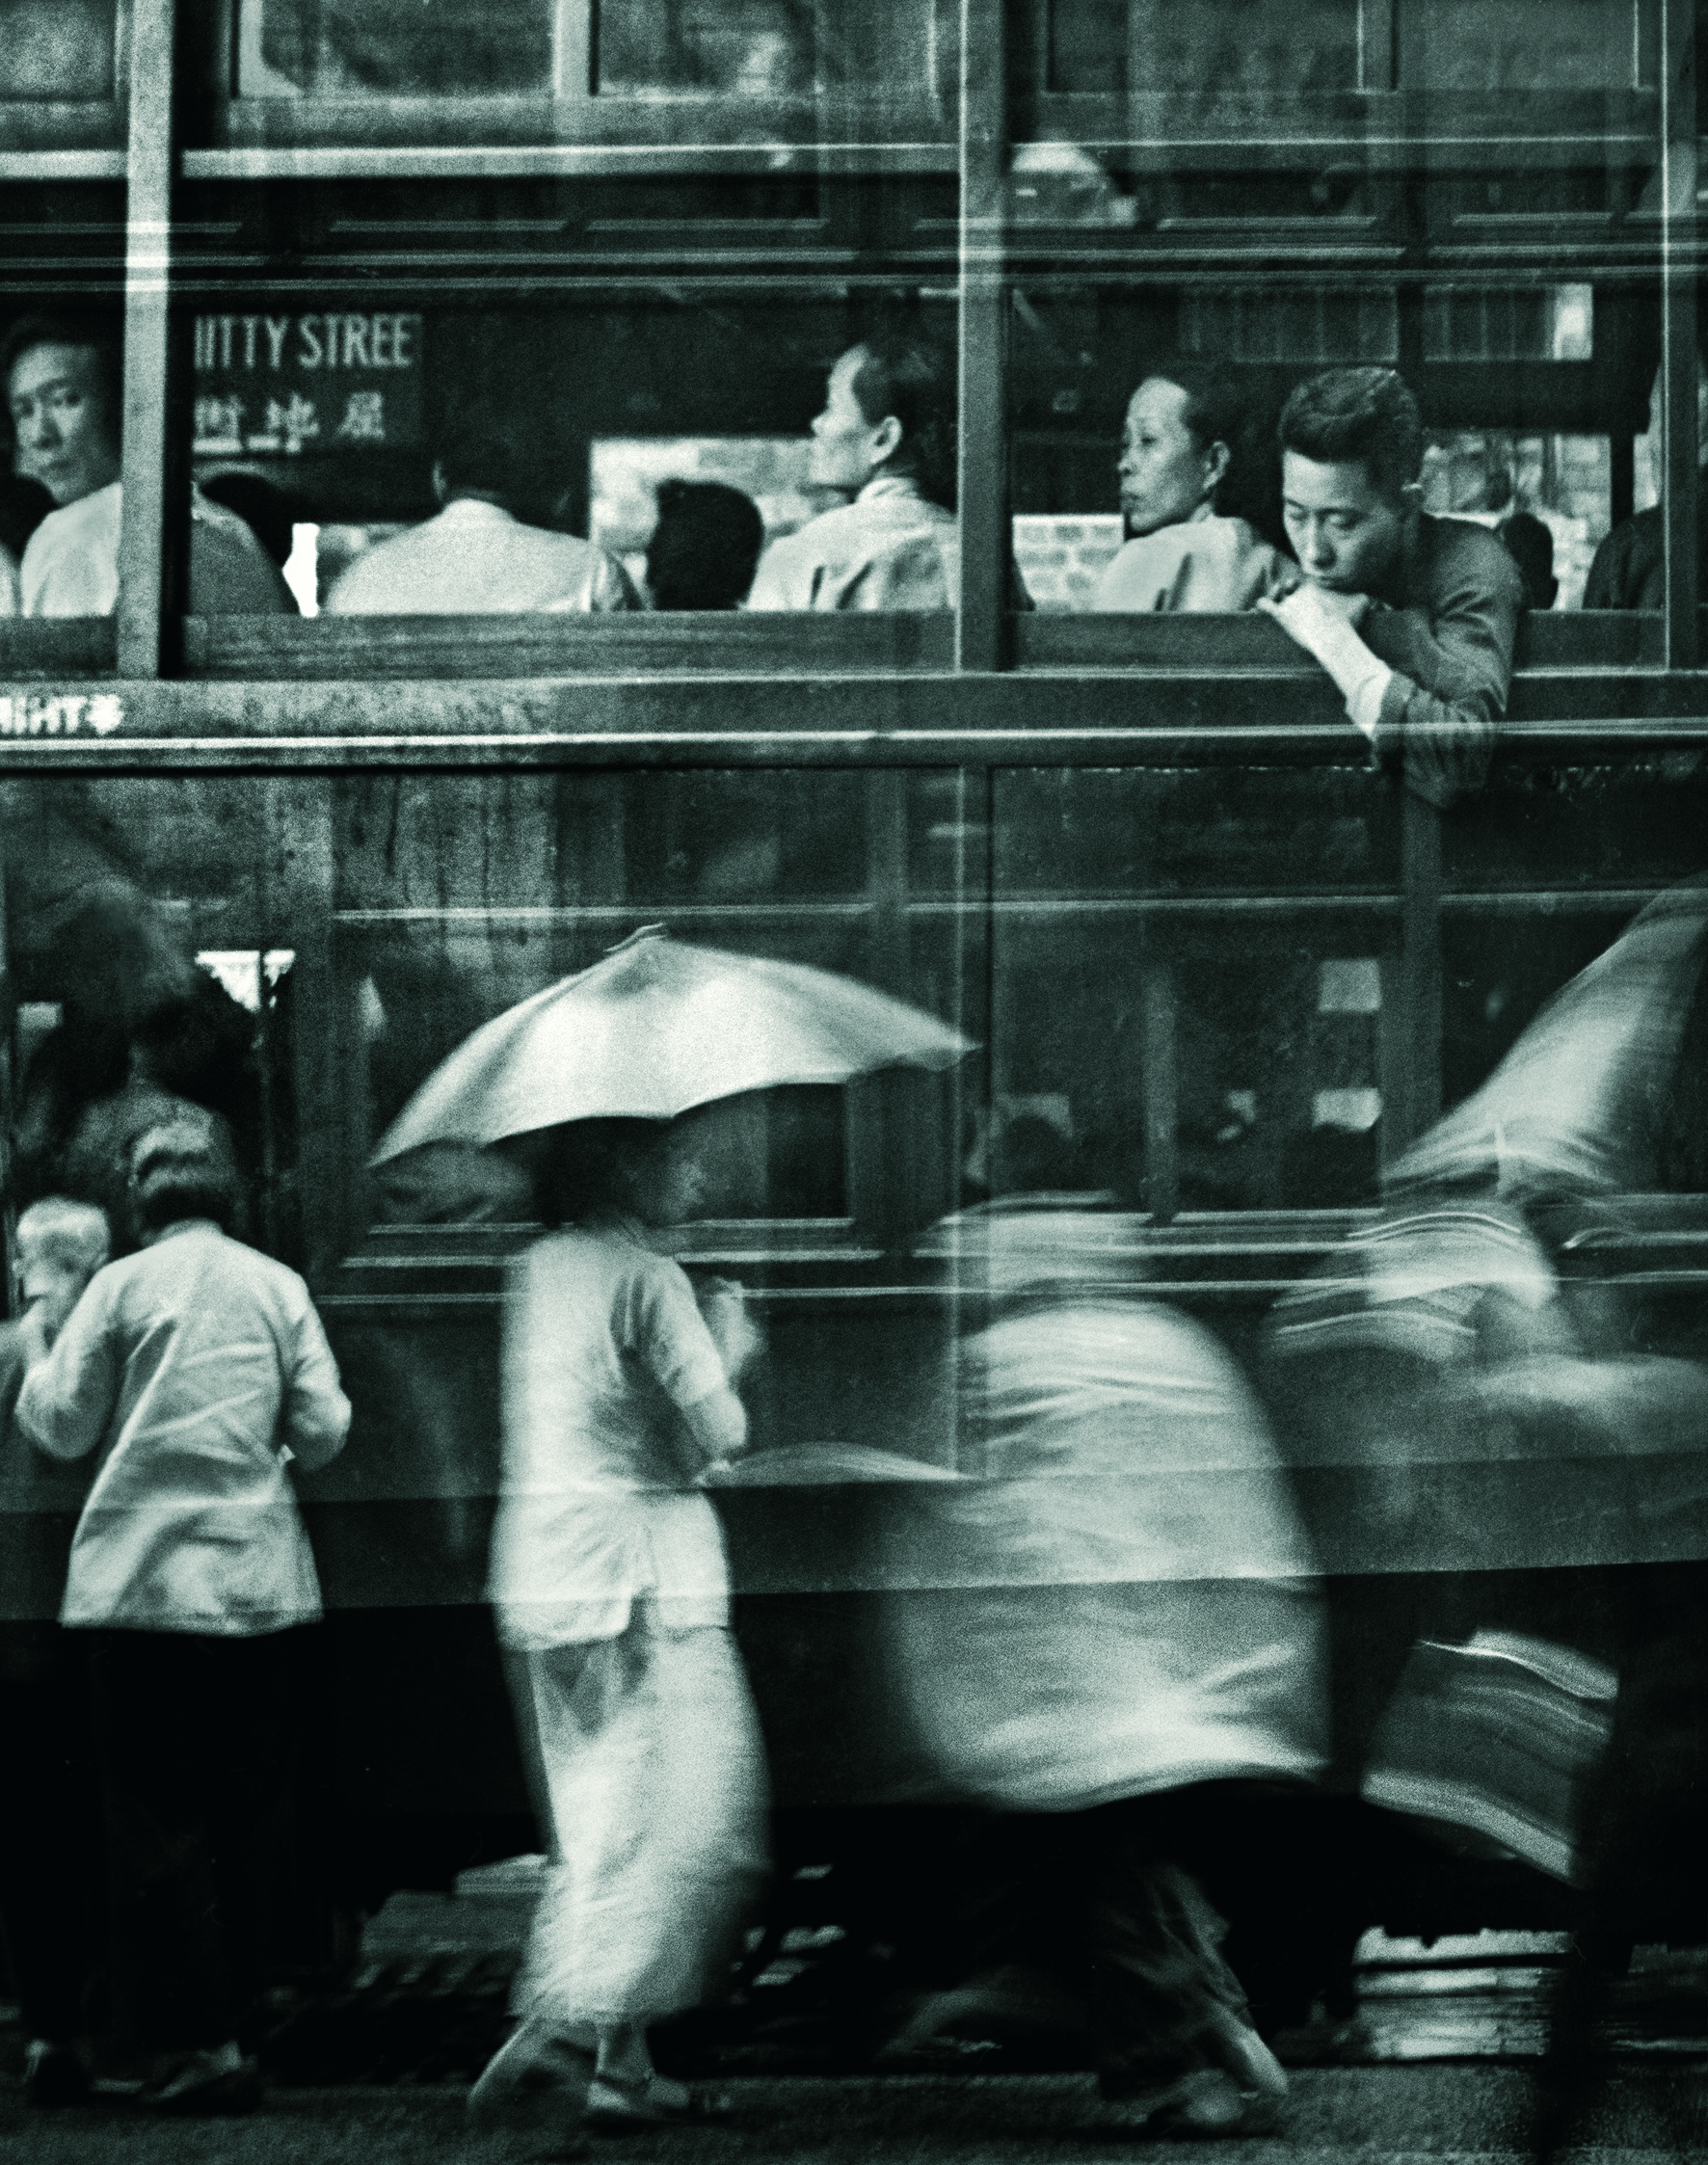 Fan Ho, Whitty Street Diary(屈地街日記).jpg